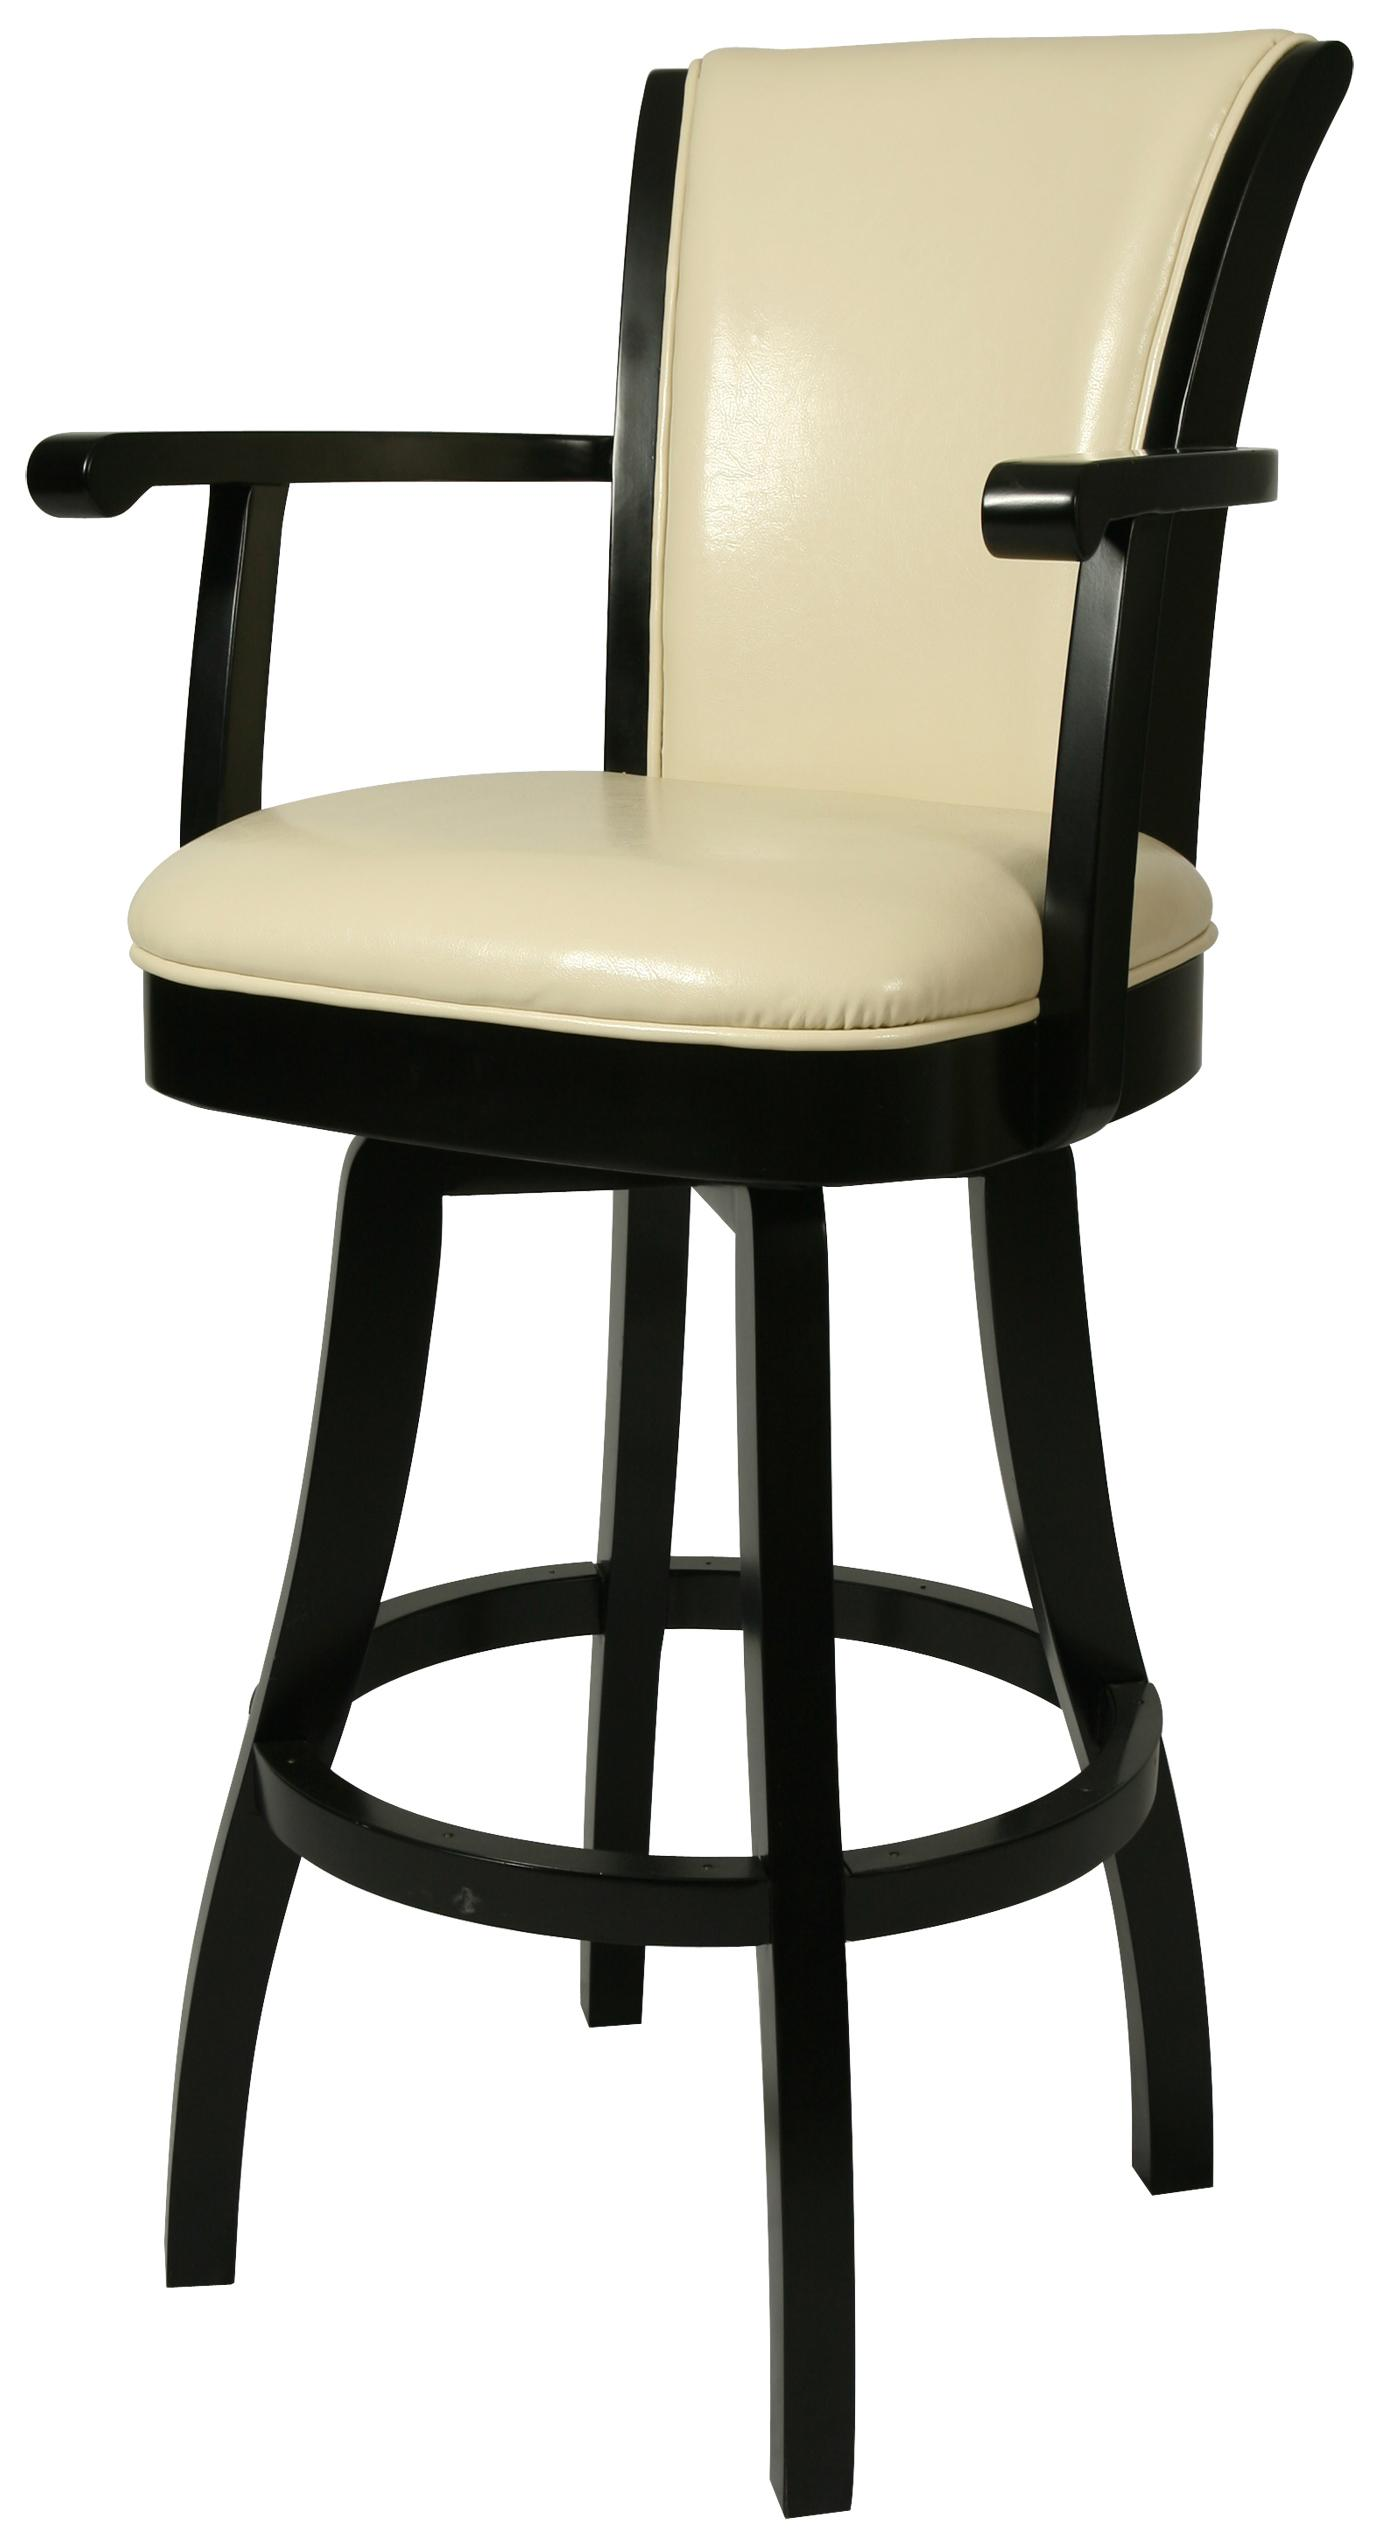 Counter Height Chairs With Arms Pastel Minson Bar Stools Bars Store Dealer Locator